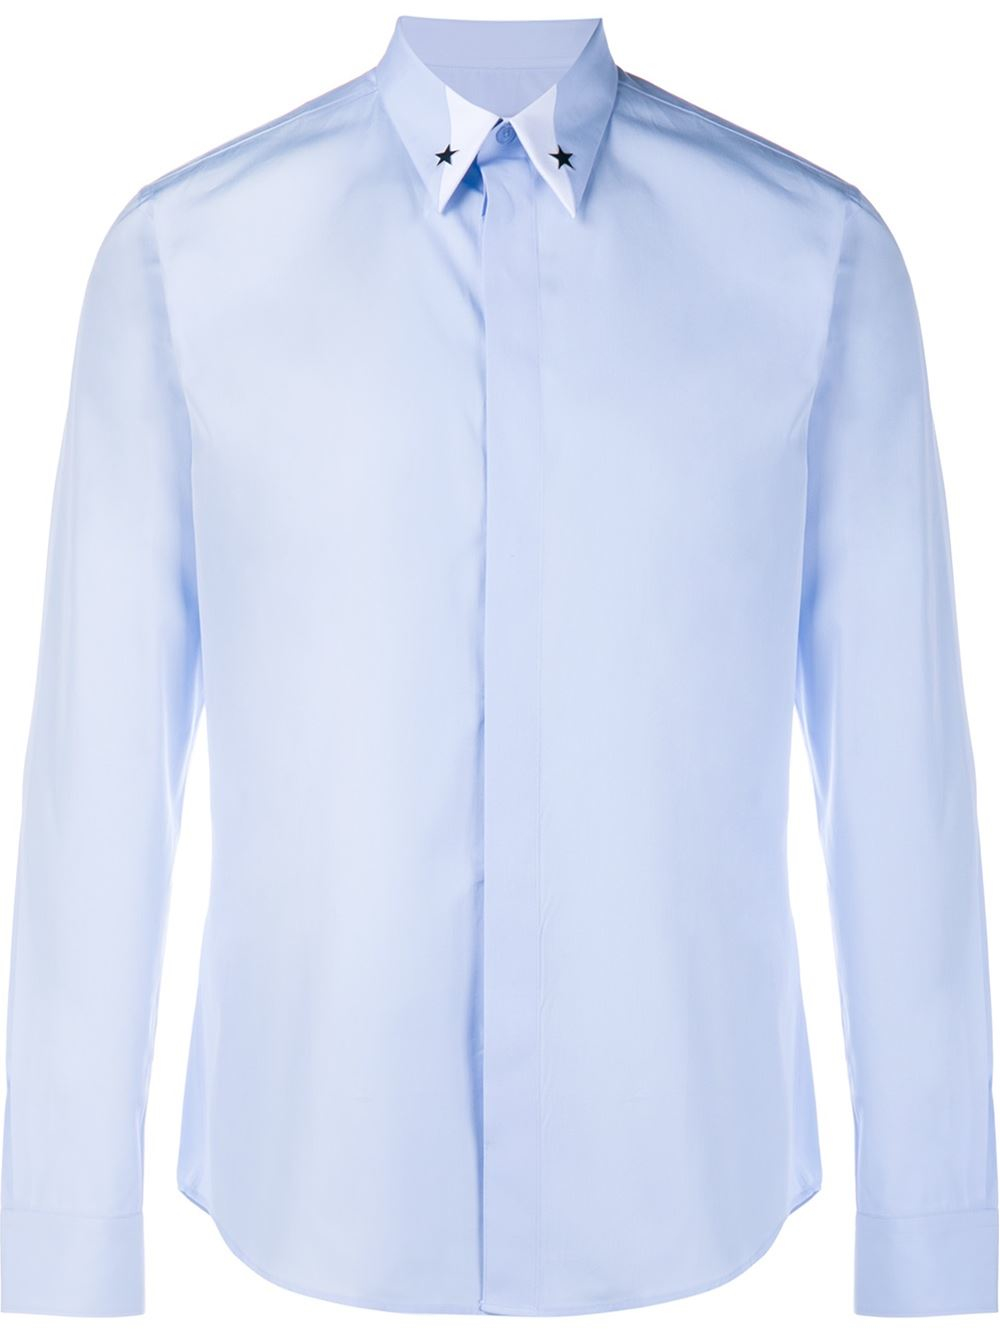 Givenchy star embellished cotton shirt in blue for men lyst for Givenchy 5 star shirt